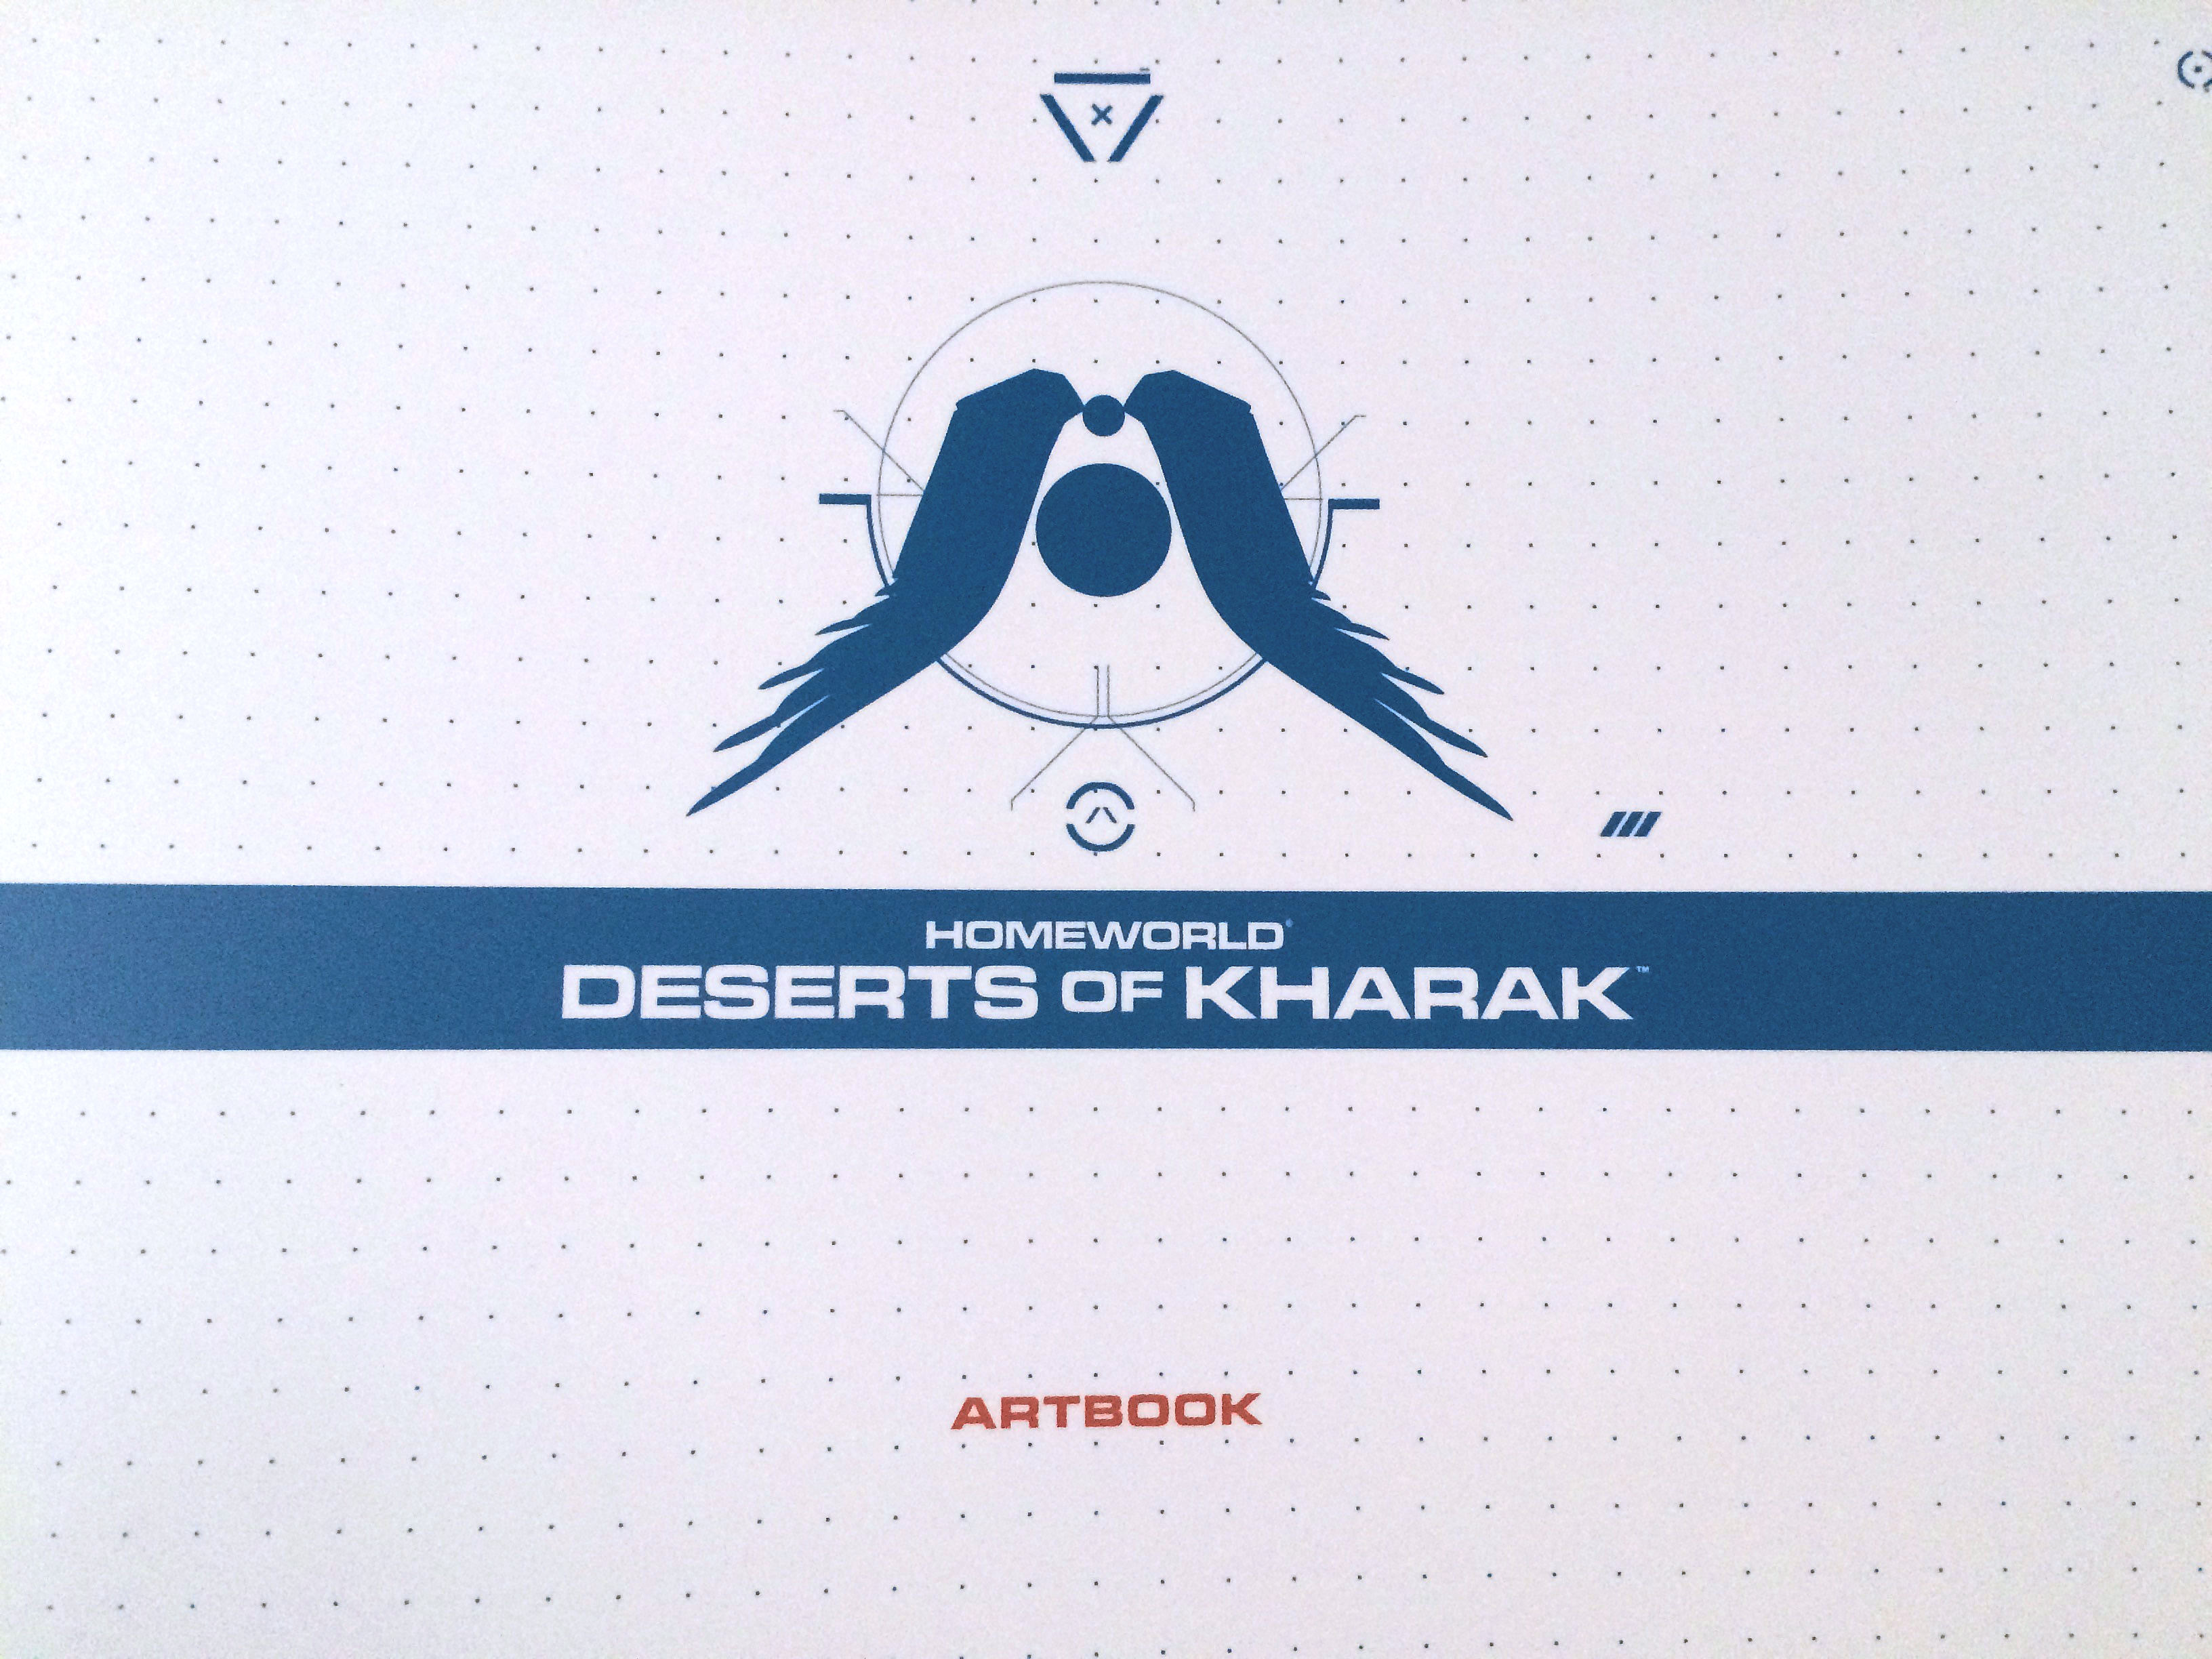 Homeworld Deserts of Kharak Collector's Edition Art Book